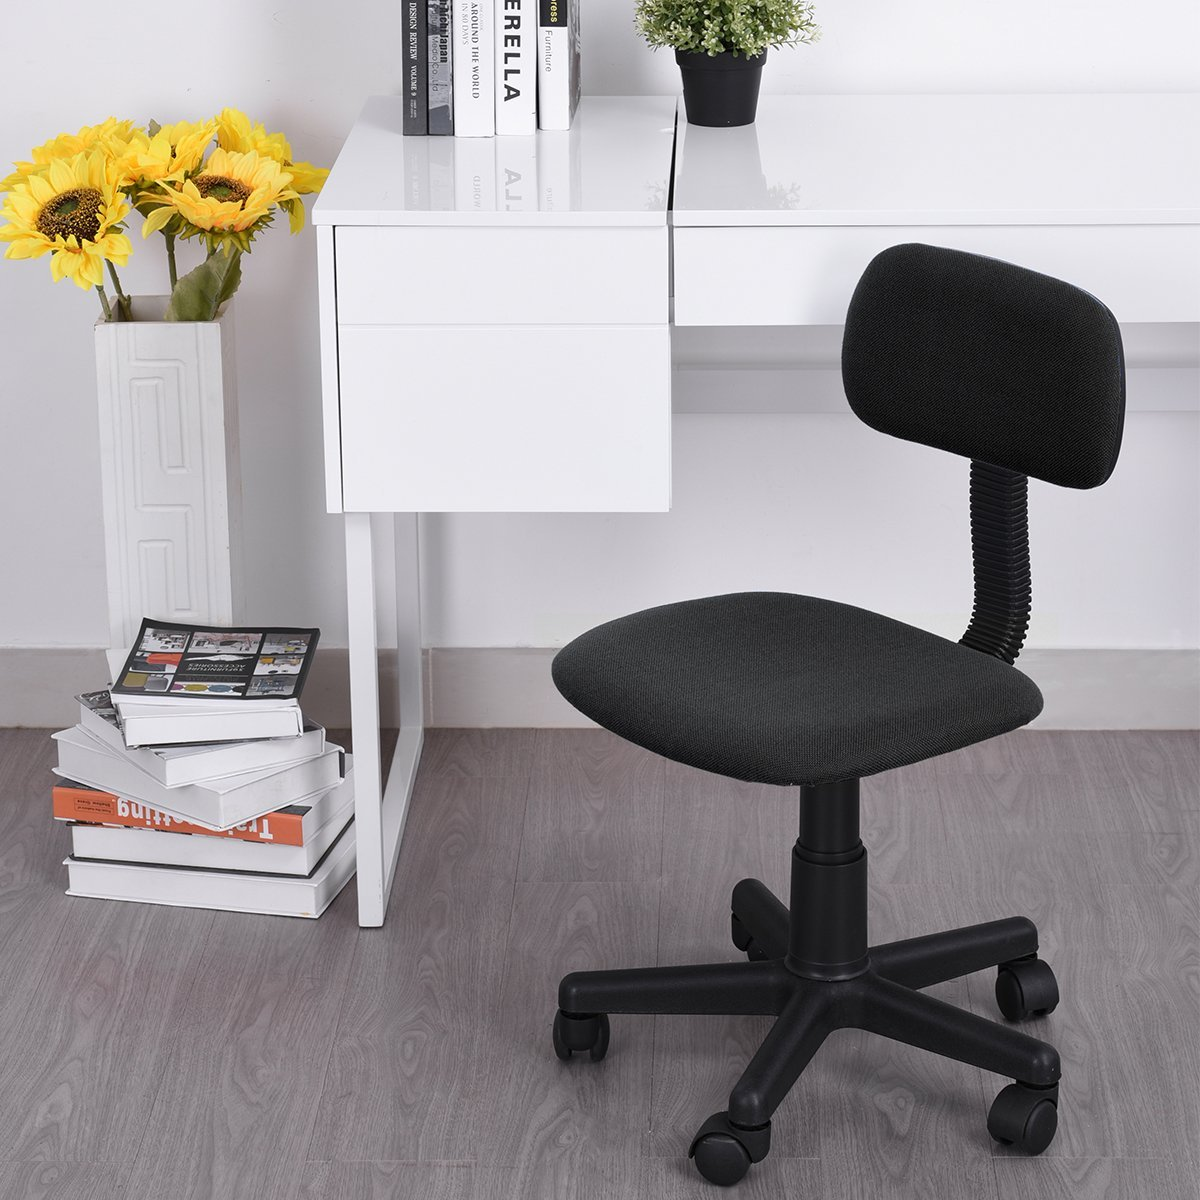 Office chair Desk Chairs Office Task Chairs Home Office Desk Chairs Study Chair Student chairs Small size office chairs